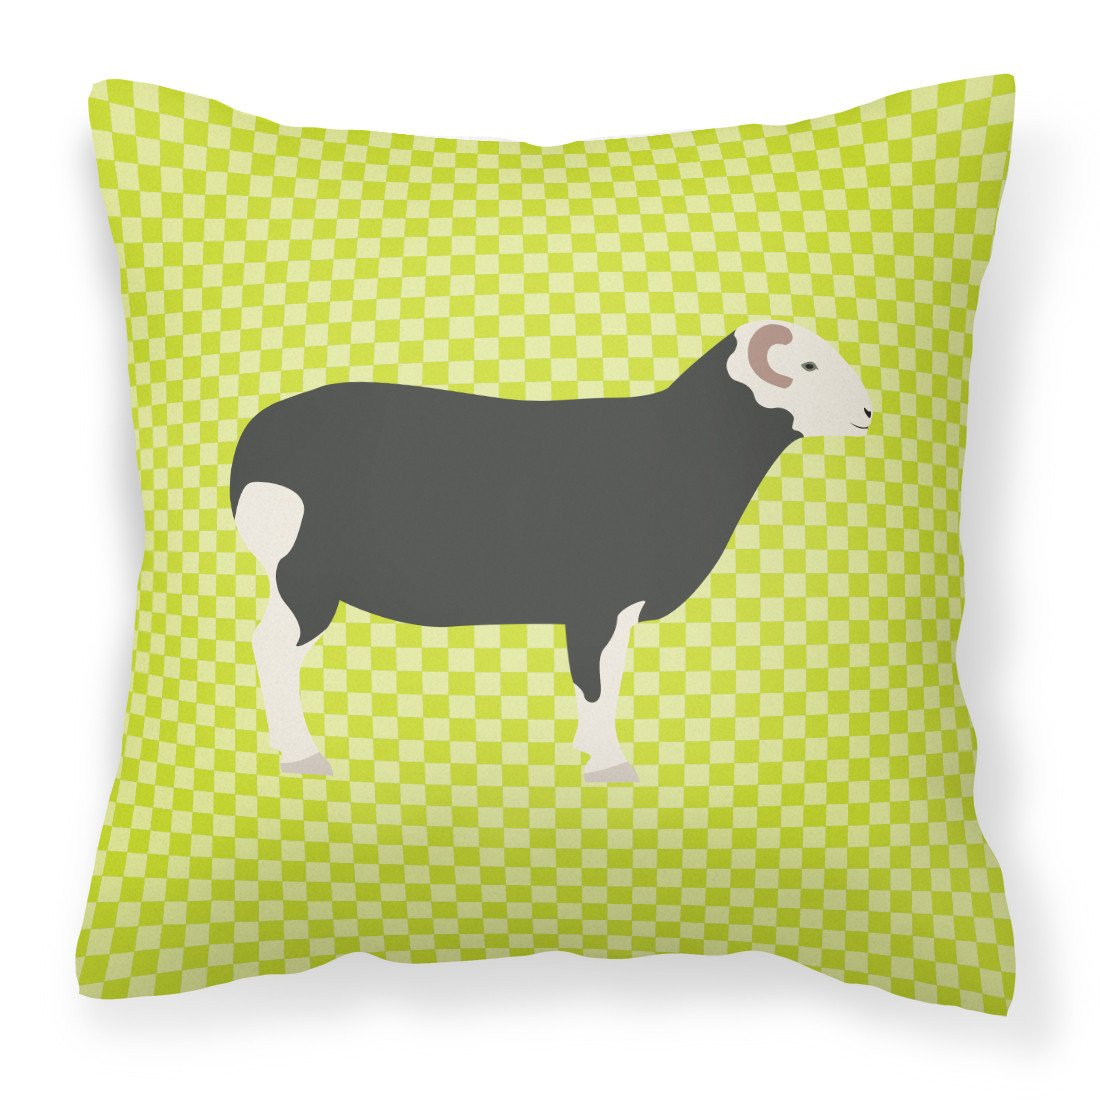 Herwick Sheep Green Fabric Decorative Pillow BB7796PW1818 by Caroline's Treasures